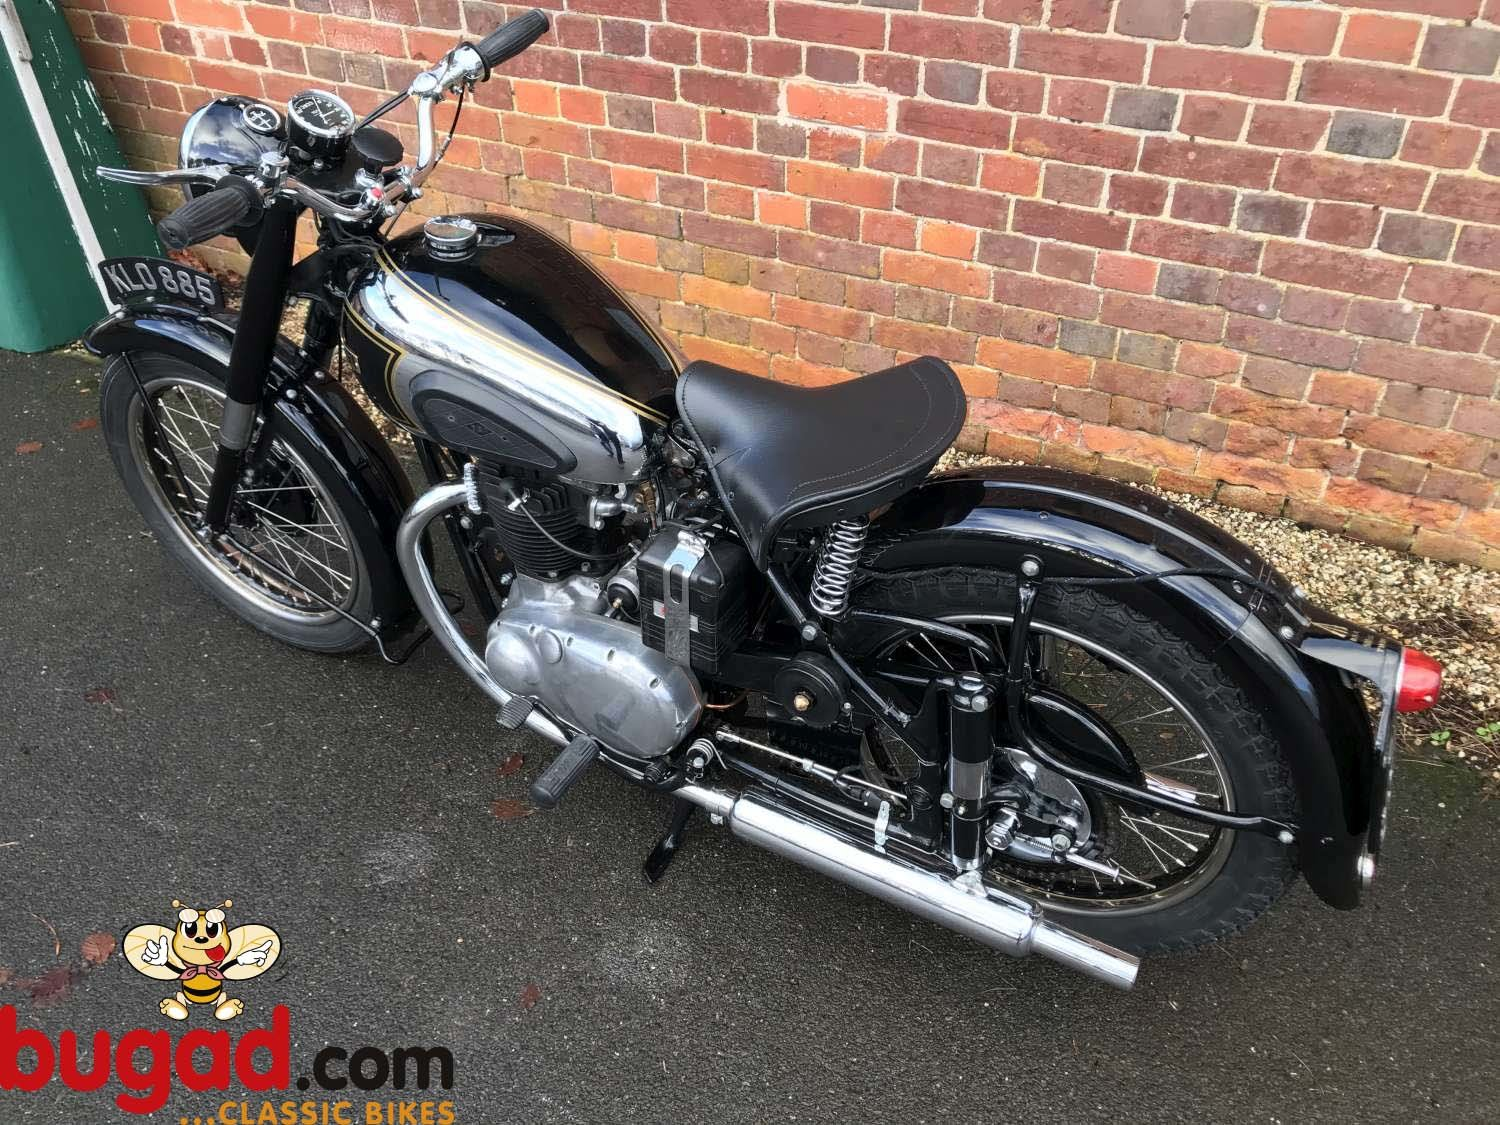 BSA A7 500cc - 1949 - Long Stroke - Plunger - Restored For Sale (picture 9 of 12)